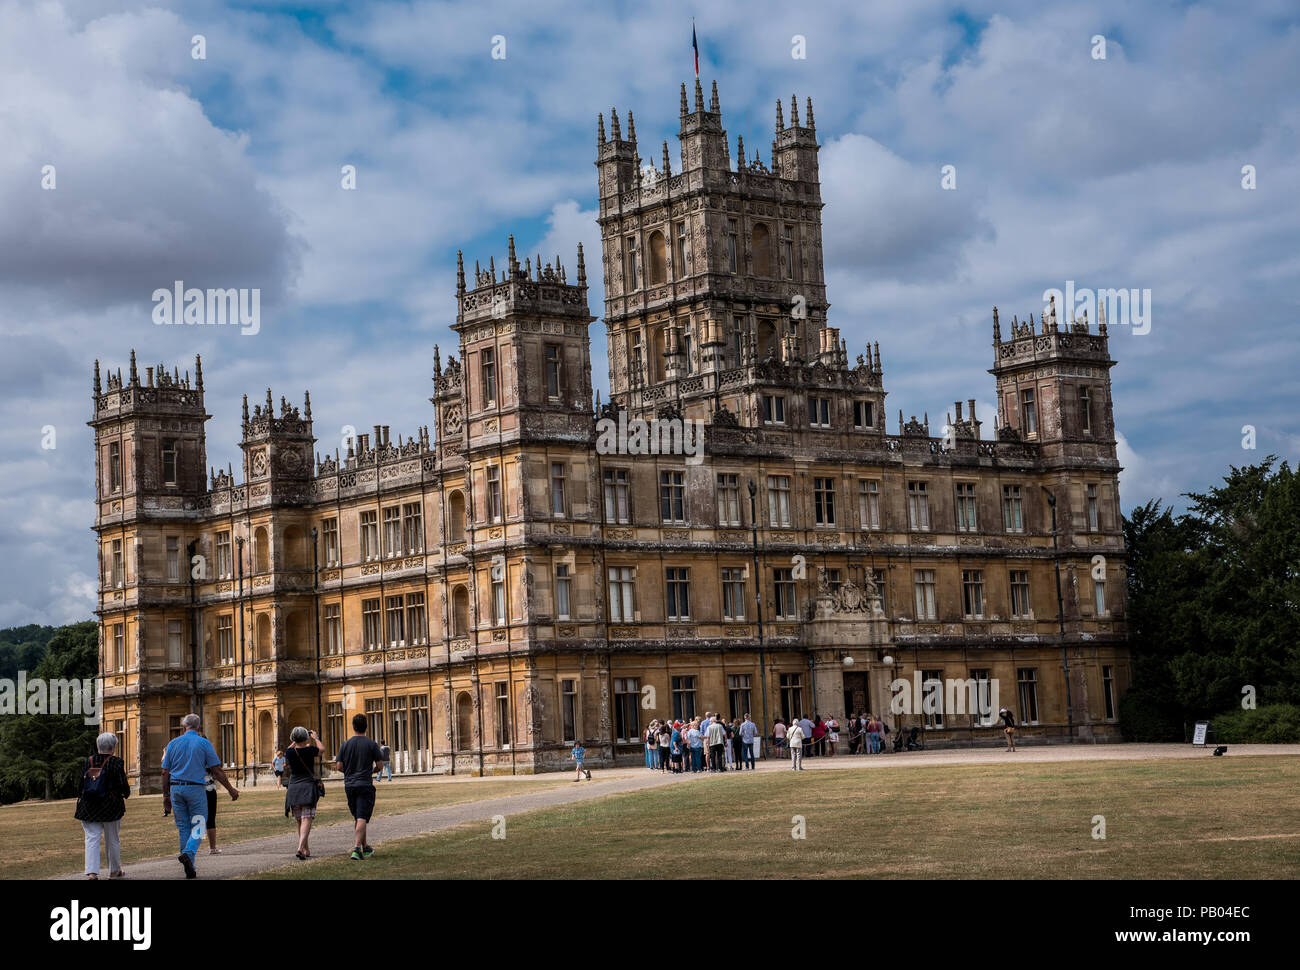 Newbury, England--July 18, 2018. Tourists visit Highclere Castle on a 5,000 acre estate in Hampshire England. It is the location for shooting the PBS  - Stock Image